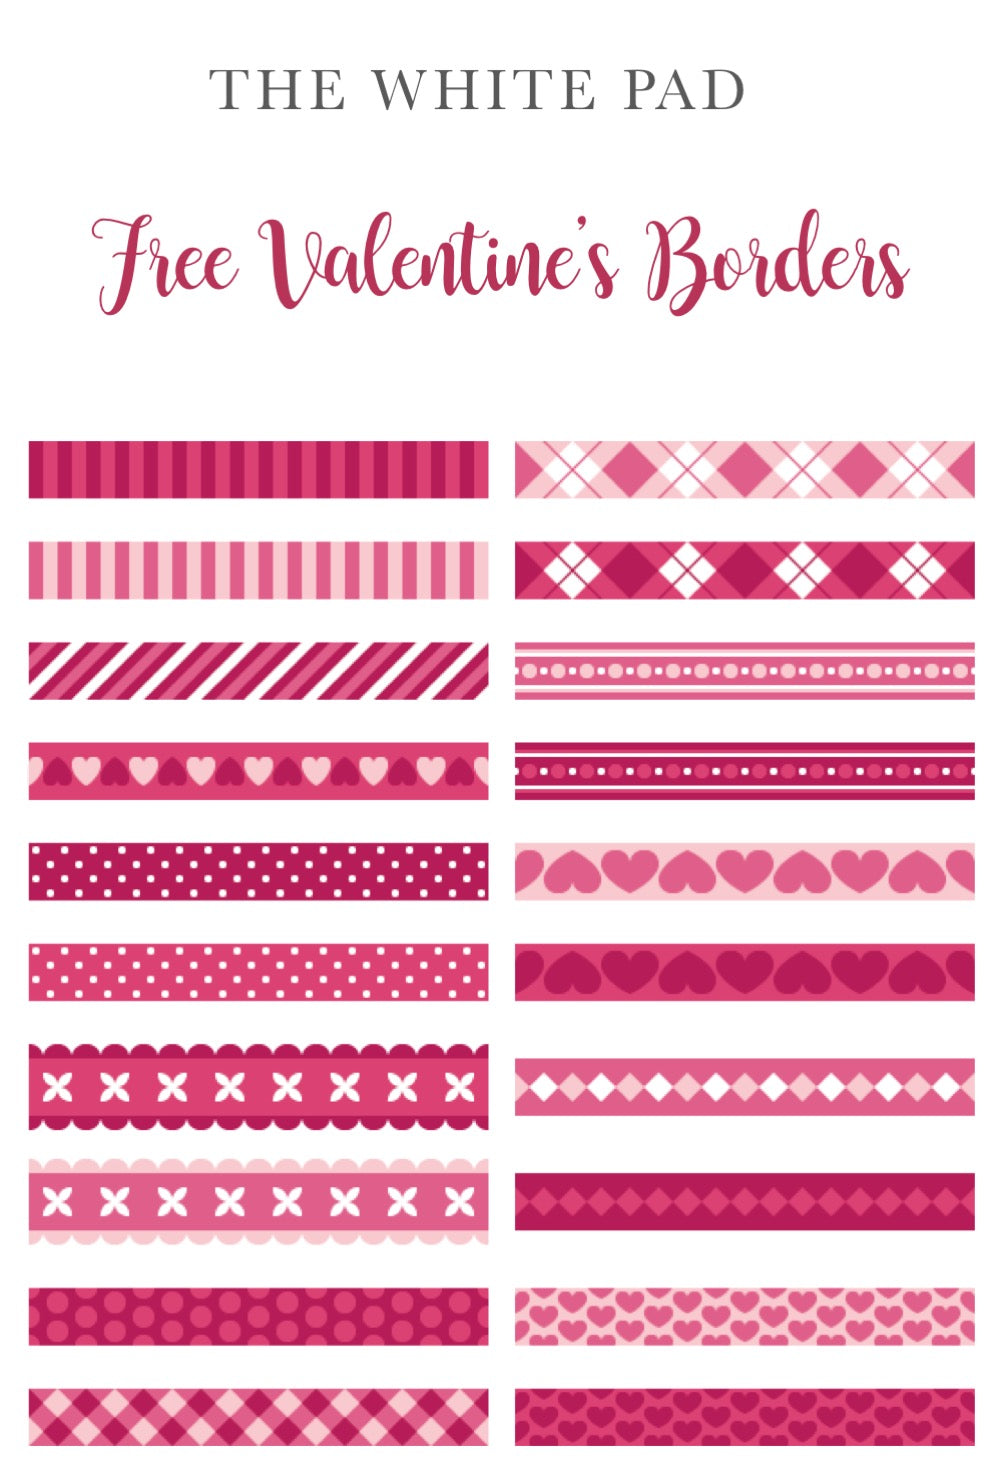 Free Valentine's Border Freebie for your Planner